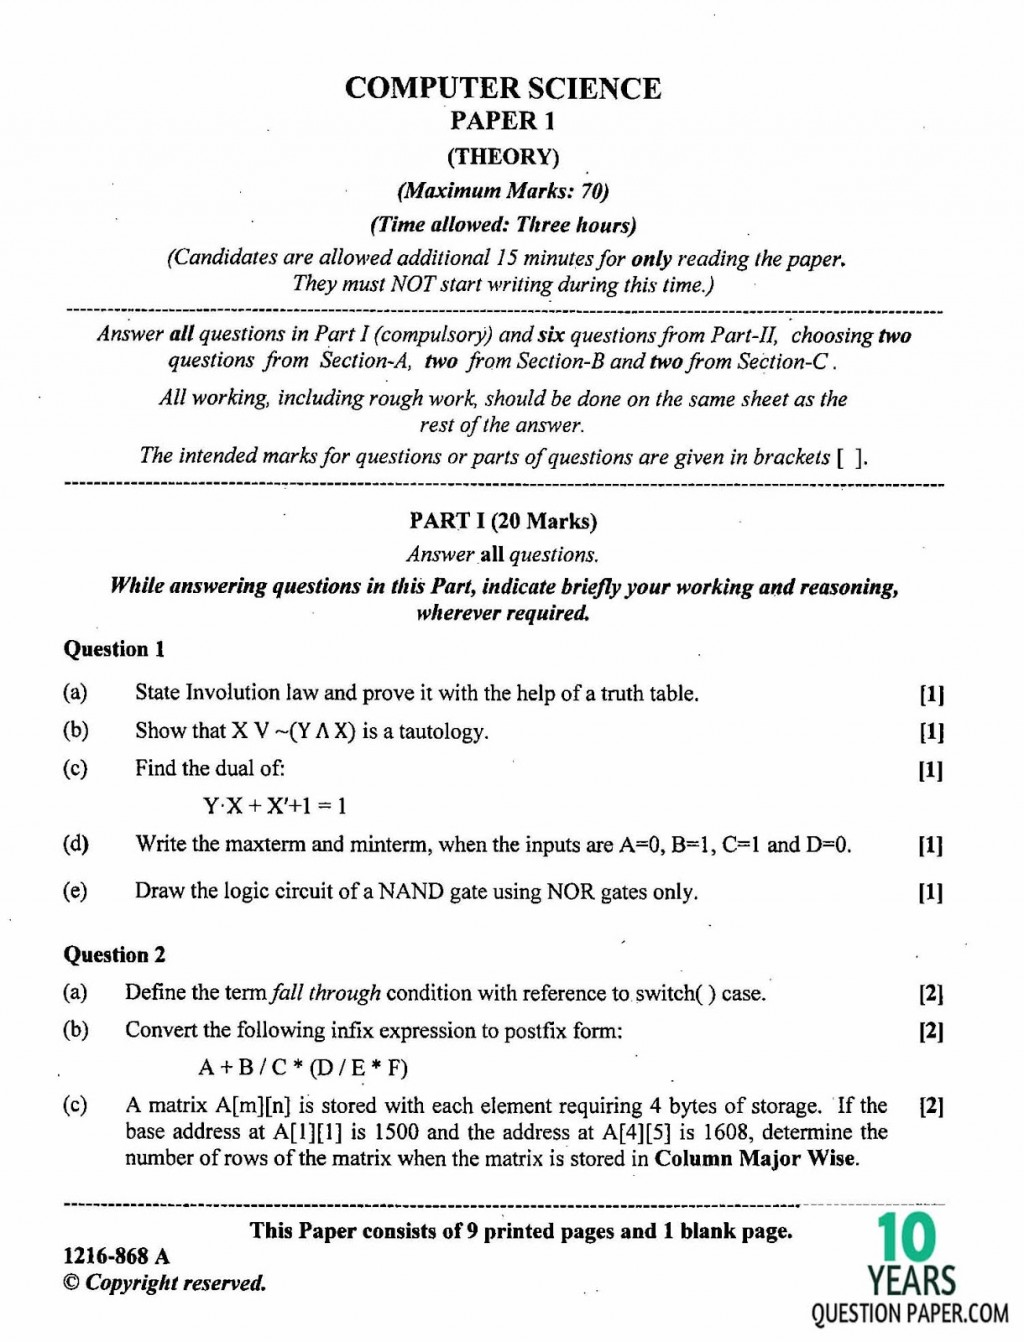 018 Research Paper Computer Science Papers Free Isc Science2b Theory Class Xii Board Question Breathtaking Pdf Download Ieee Large